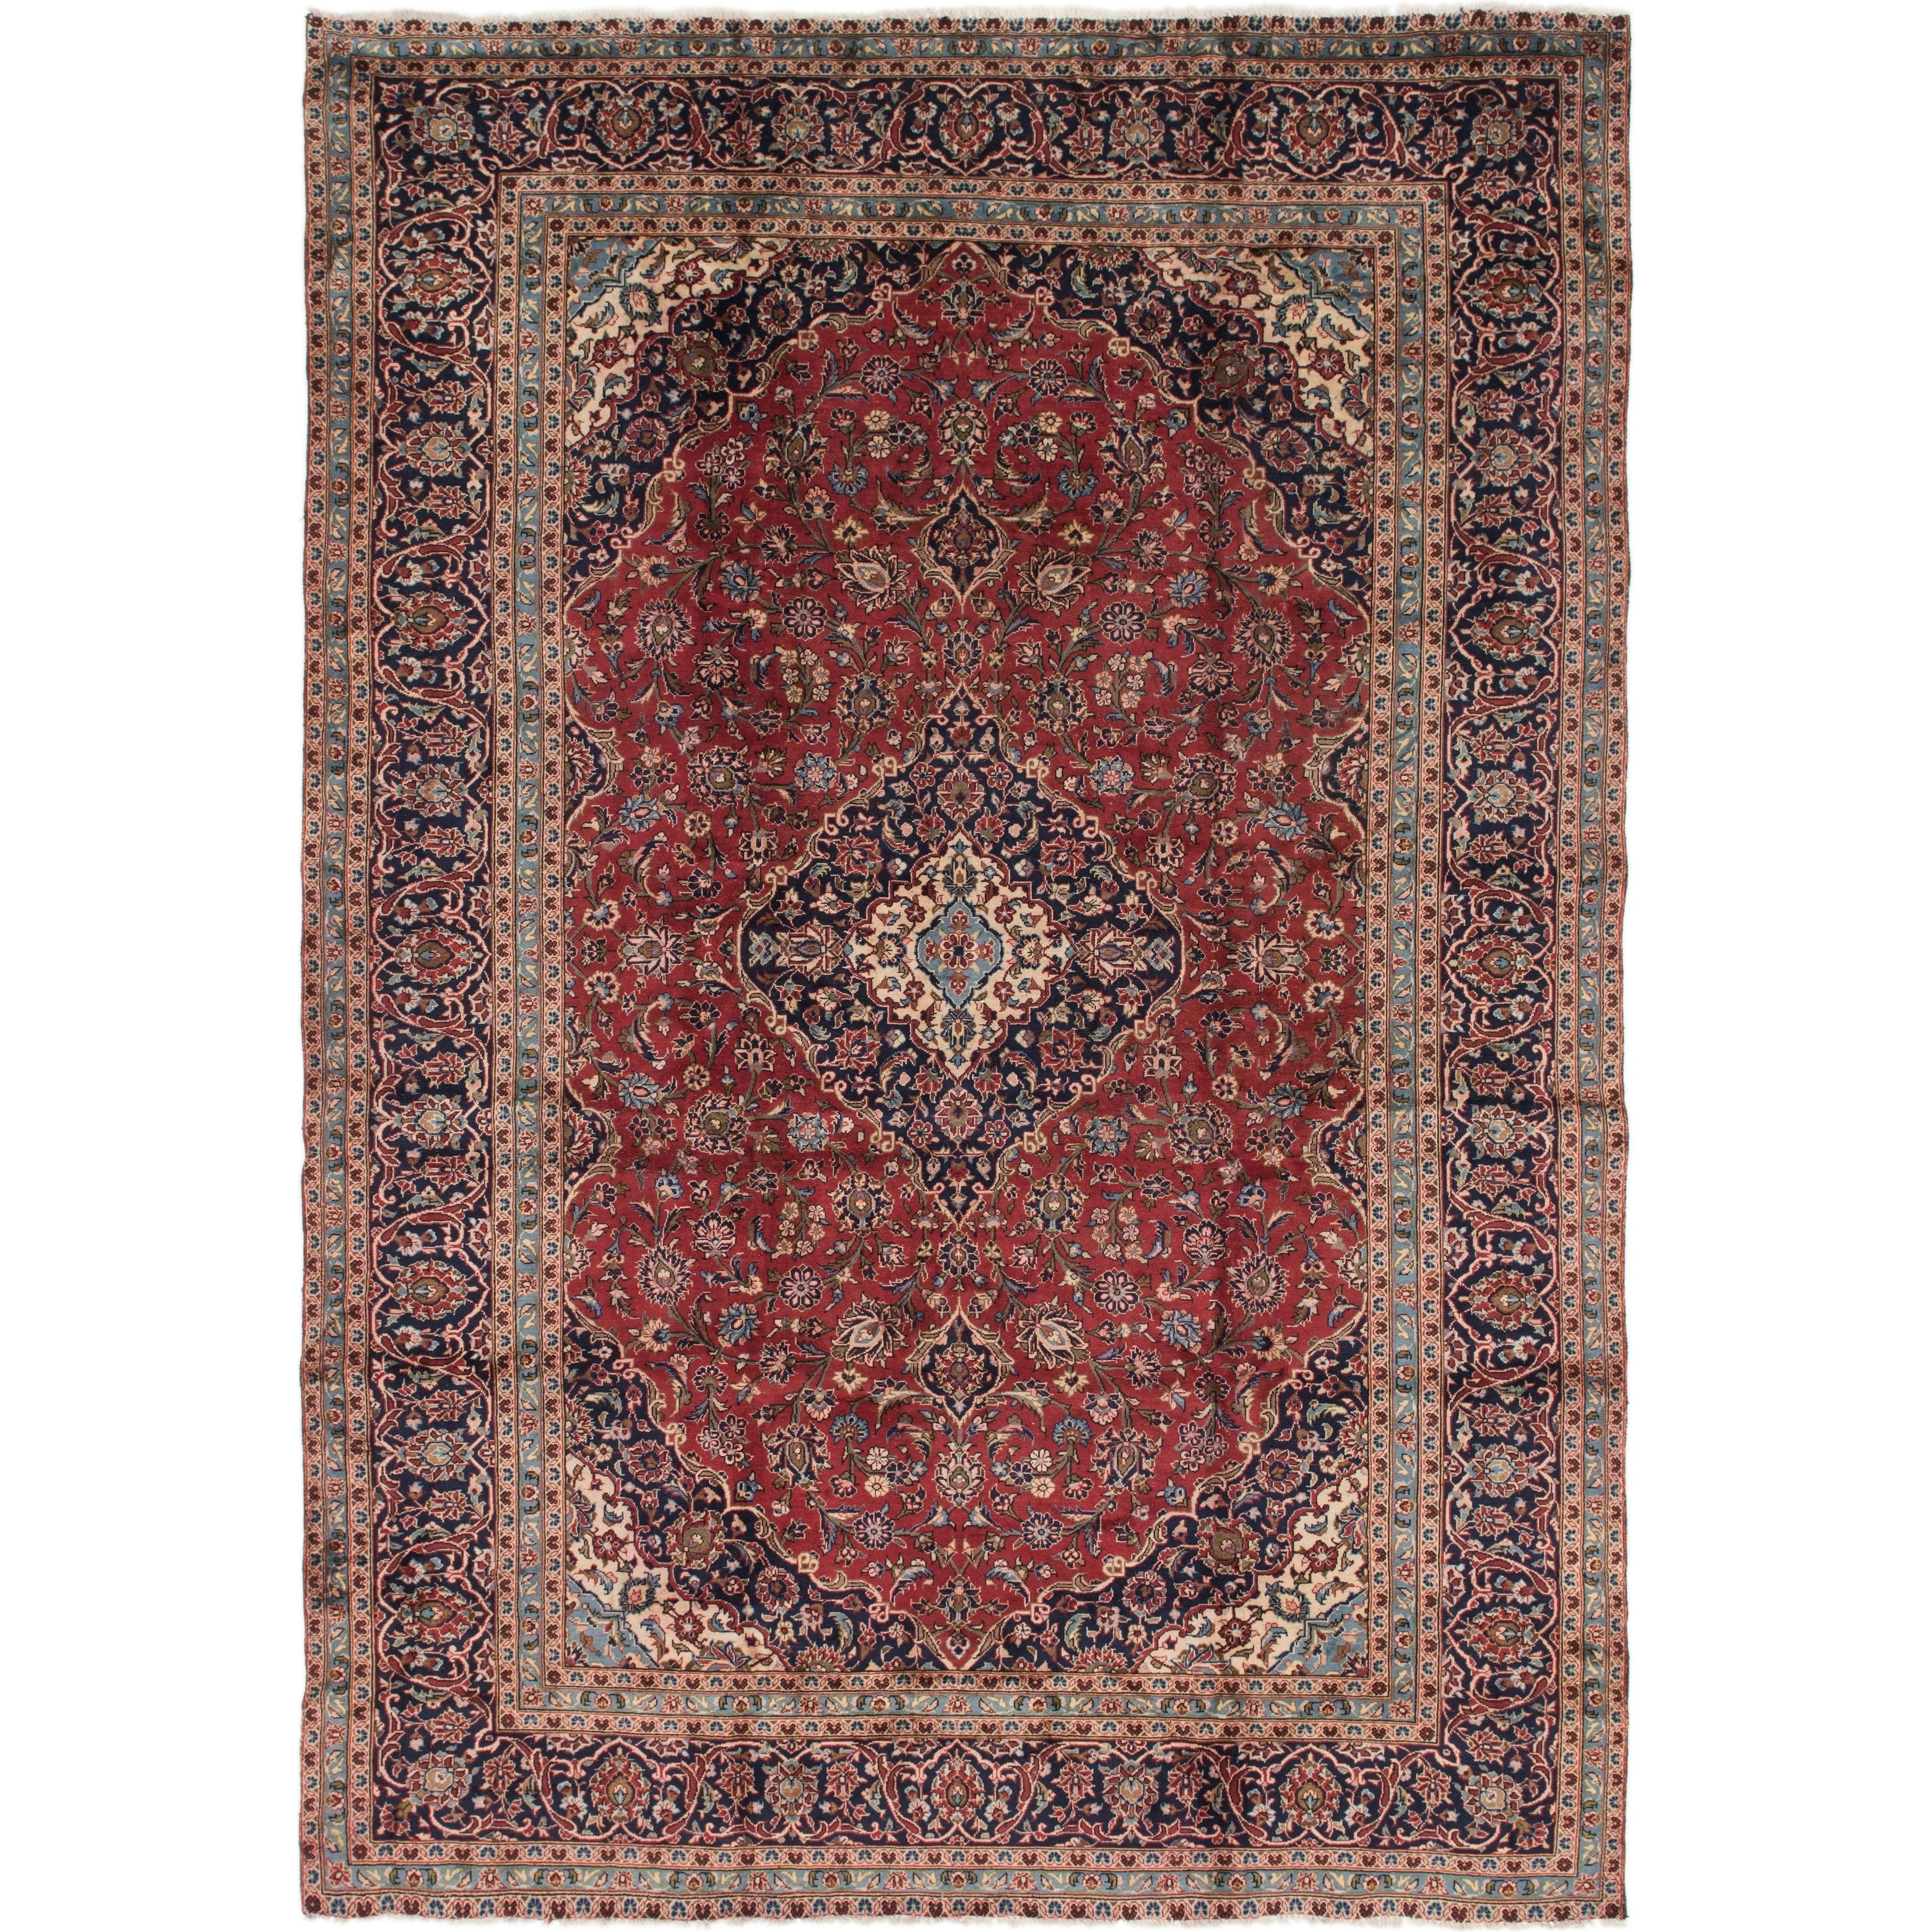 Hand Knotted Kashan Semi Antique Wool Area Rug - 9 5 x 13 7 (Red - 9 5 x 13 7)